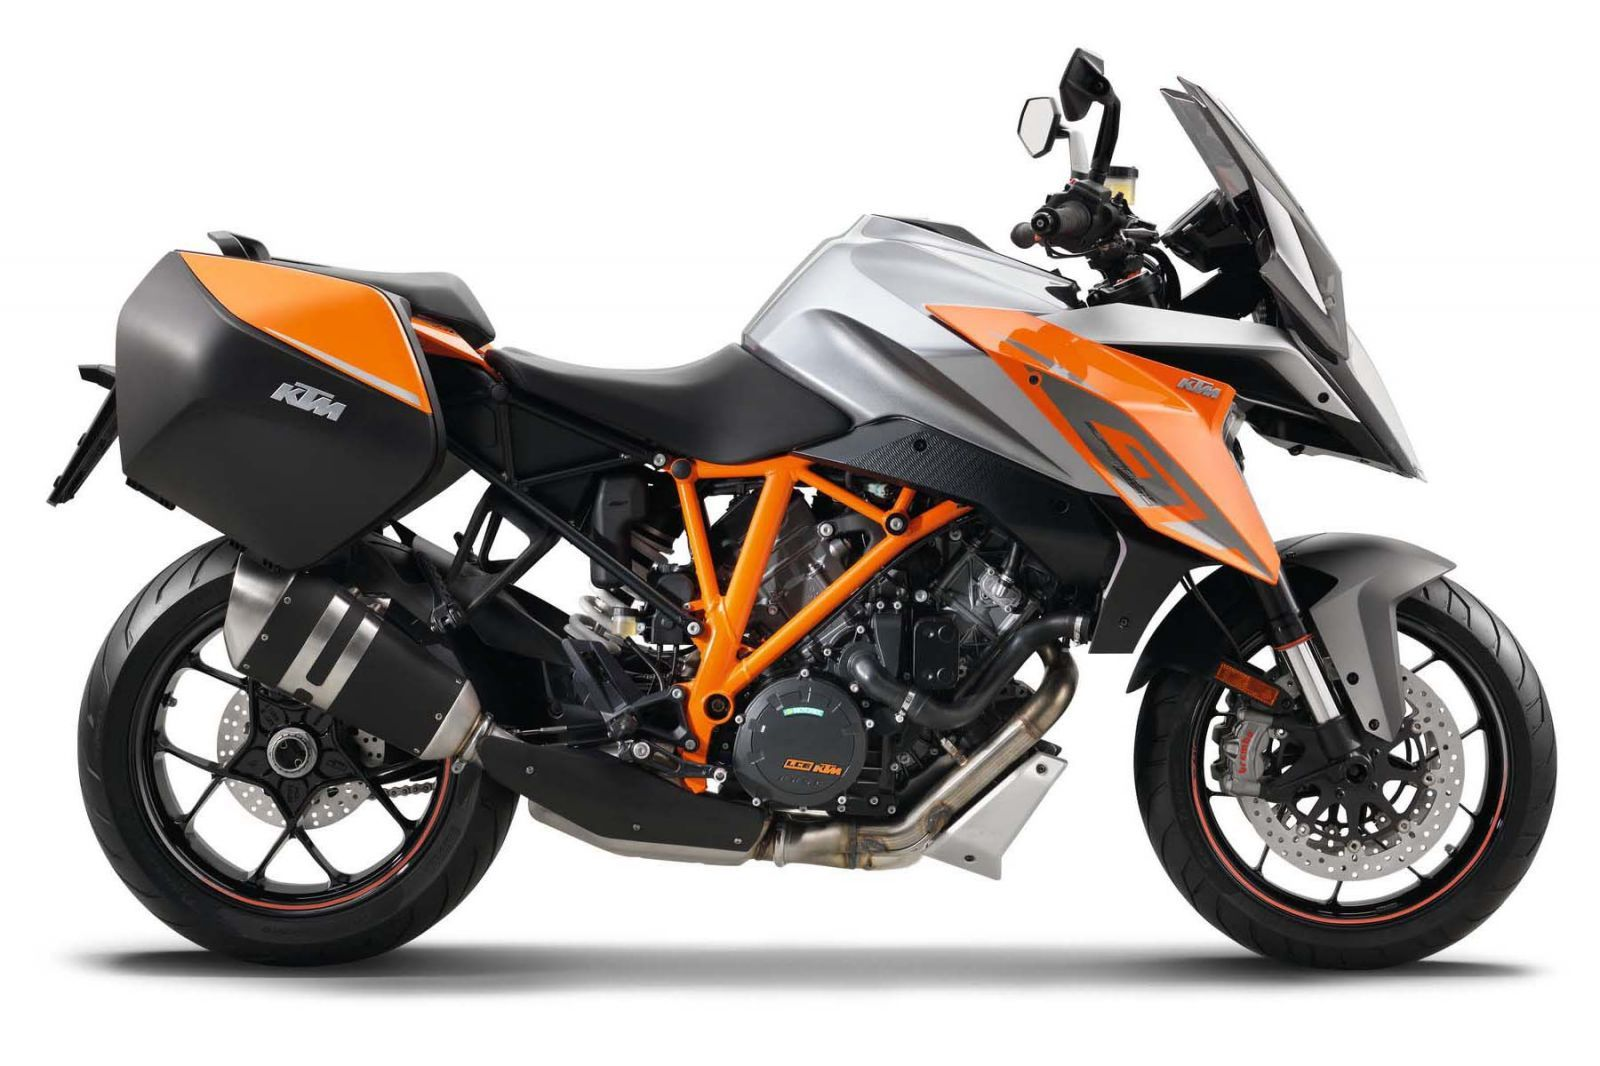 trail ktm 1290 super duke gt moto scooter motos d 39 occasion. Black Bedroom Furniture Sets. Home Design Ideas